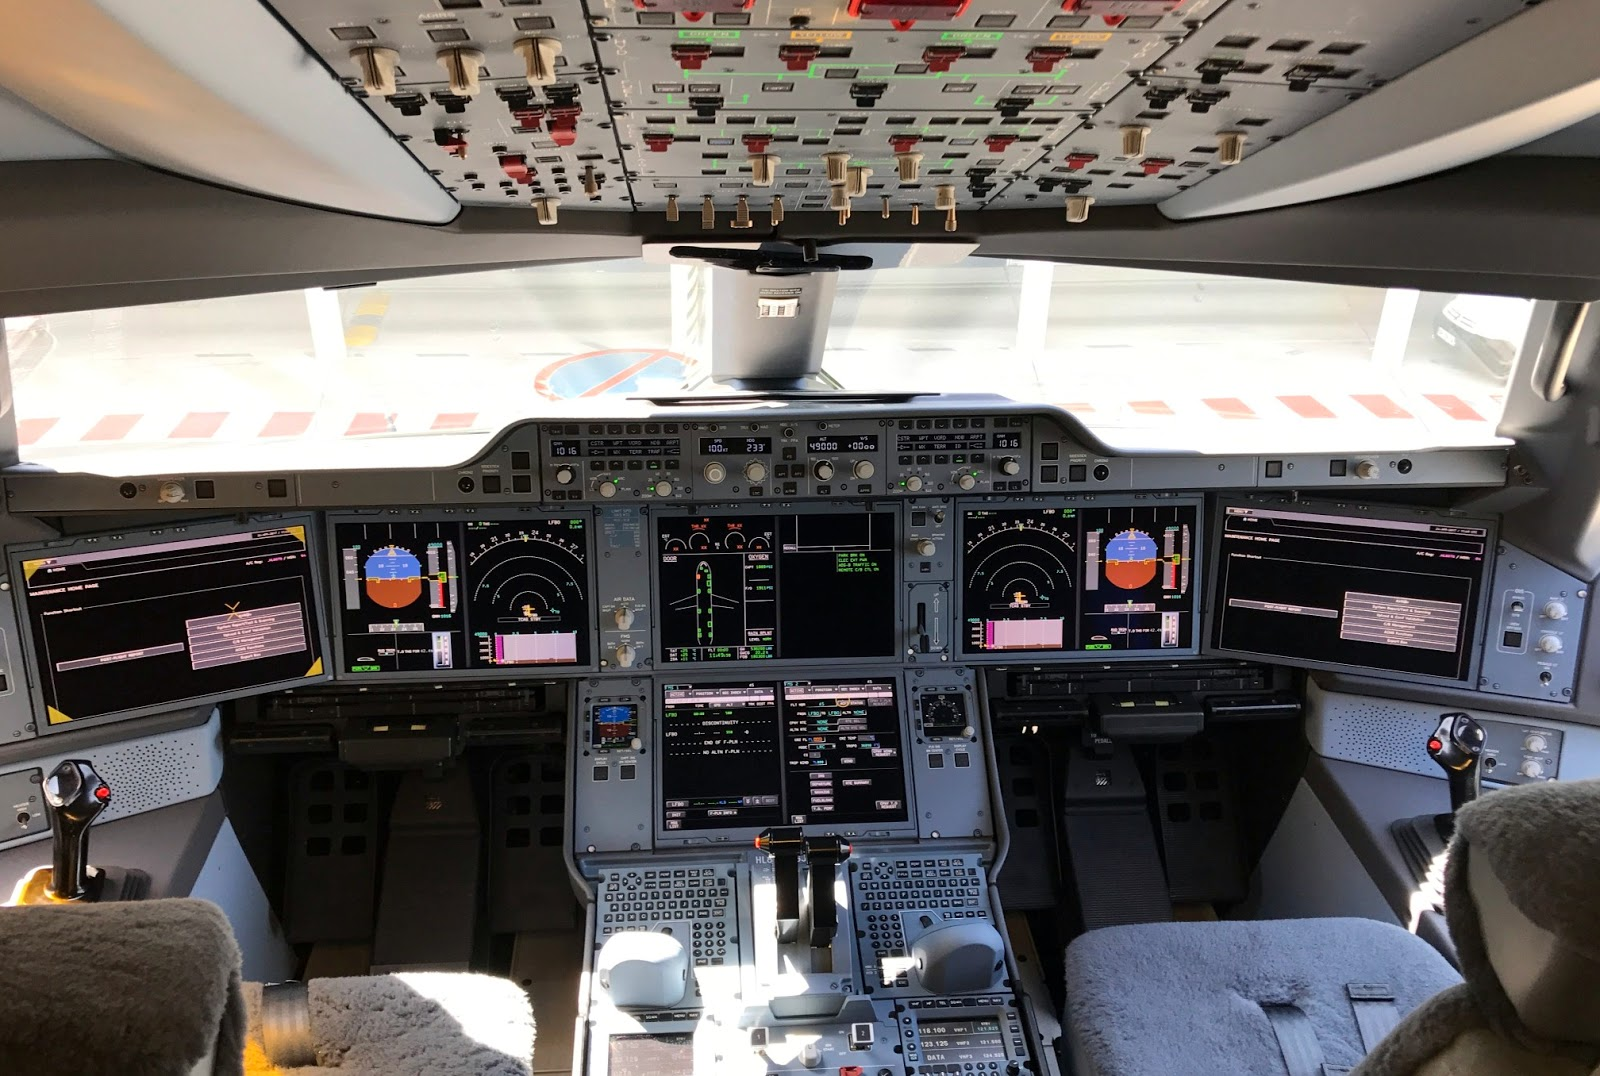 Airbus A350 900 Cockpit Instruments And Crew Layout